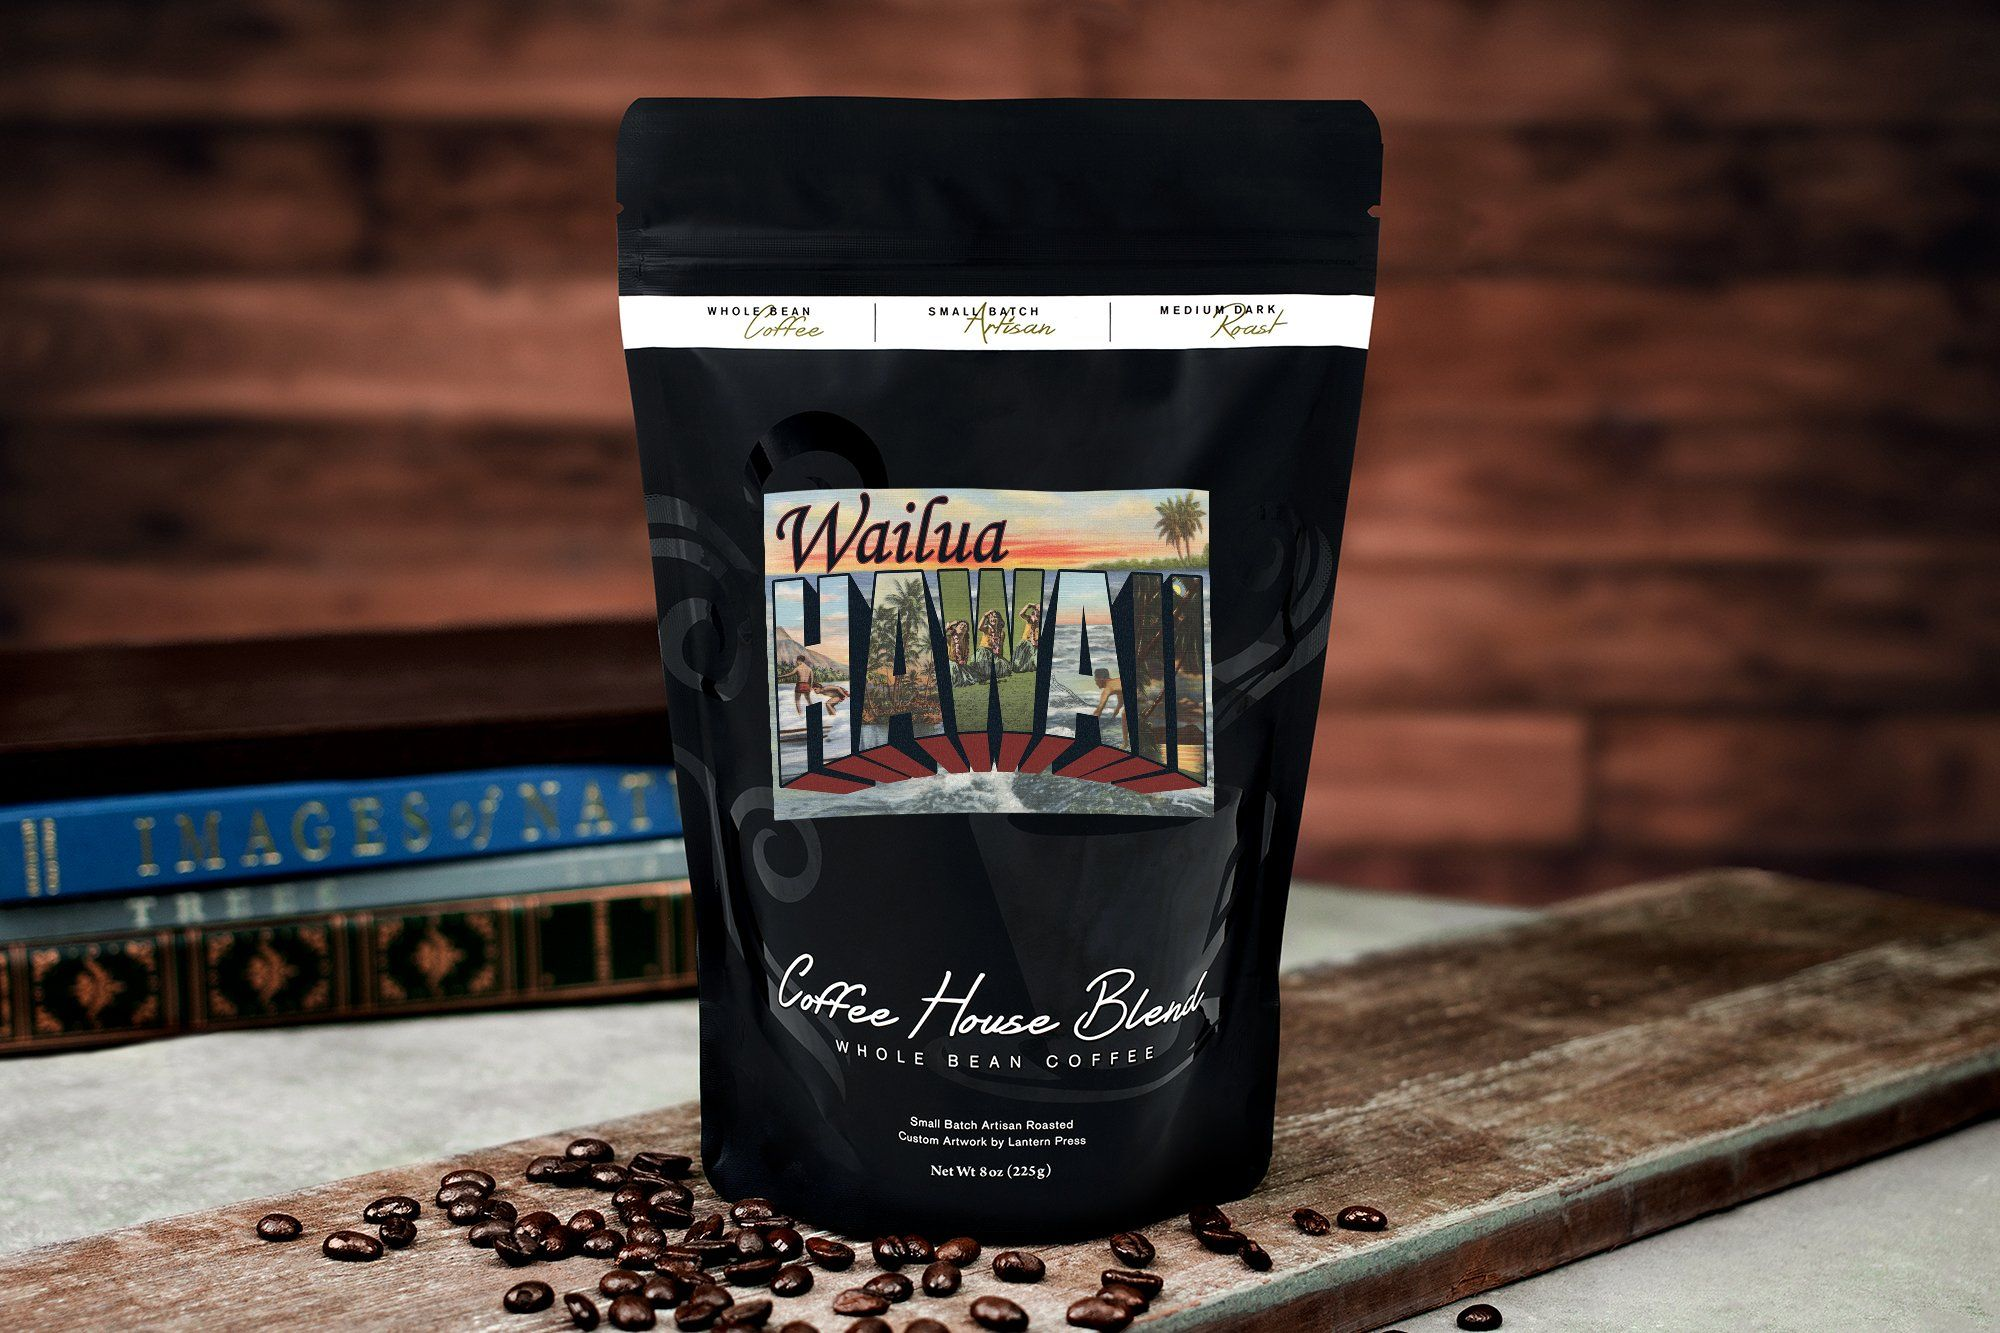 Wailua Hawaii Large Letter Scenes 8oz Whole Bean Small Batch Artisan Coffee Bold And Strong Medium Dark Roast W Artwork Visit The Coffee Dark Roast Beans